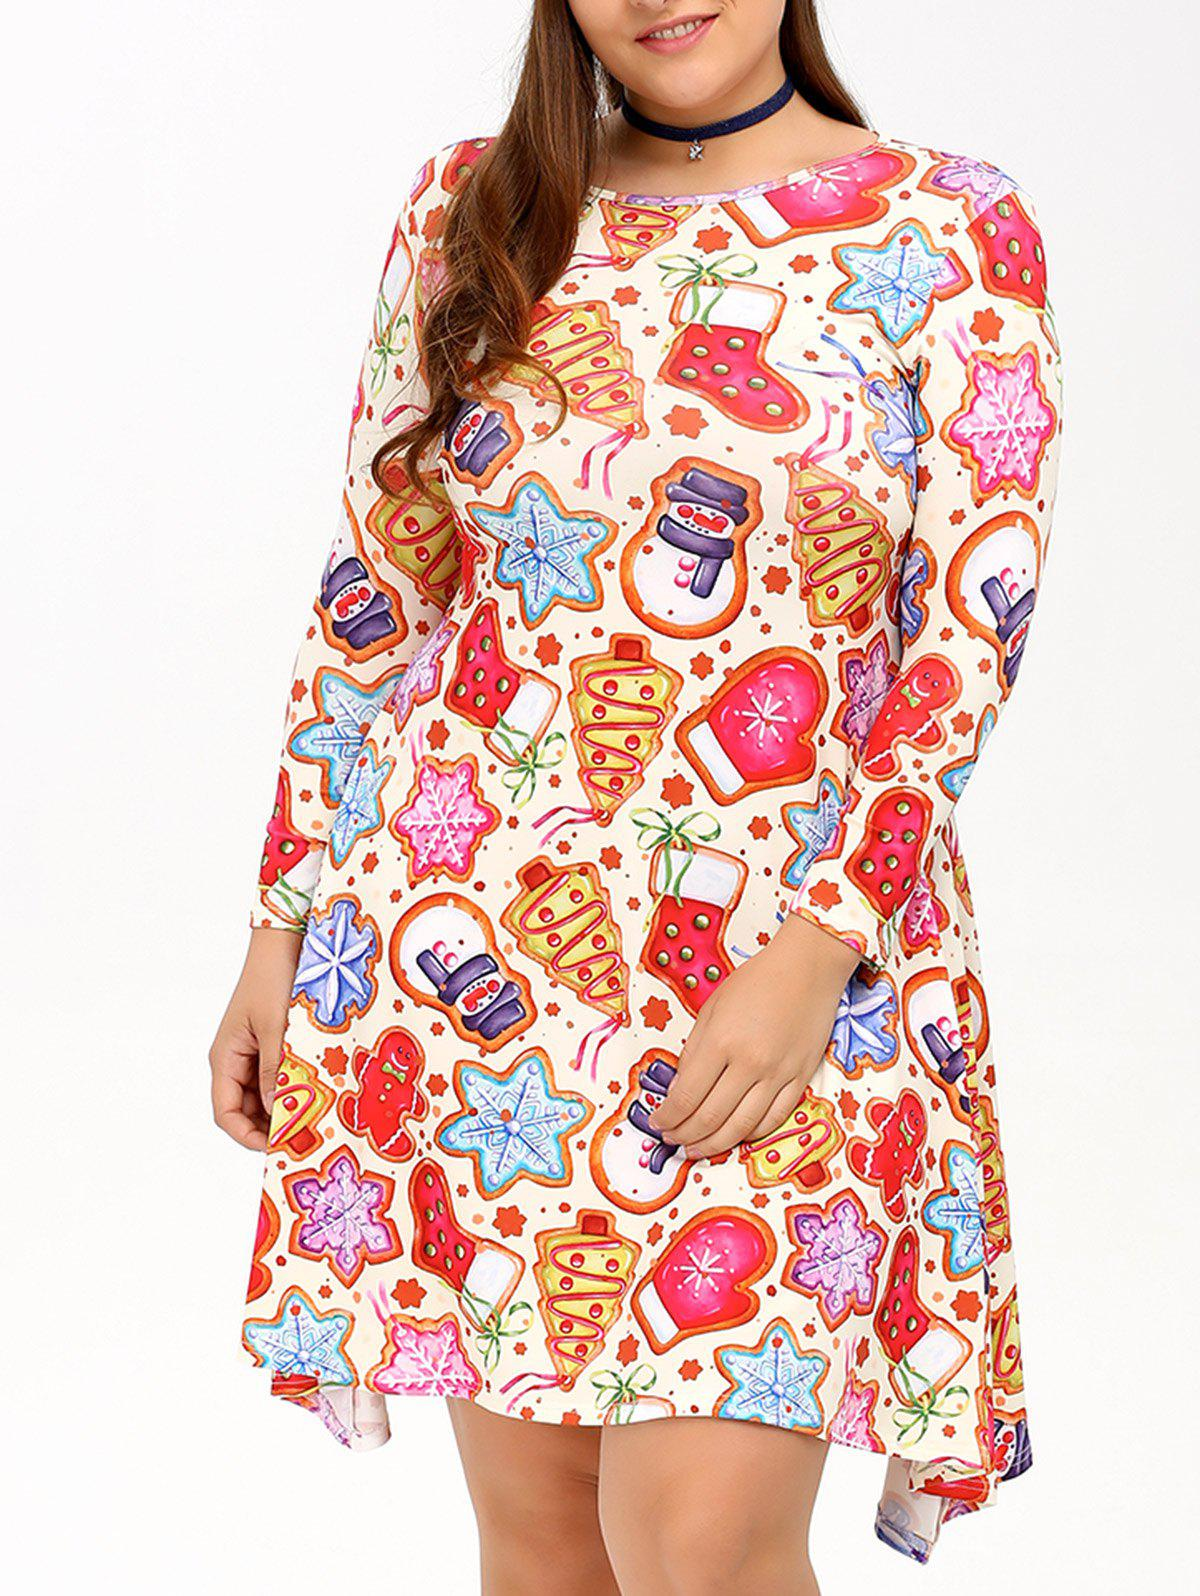 Cookie Print Swing DressWOMEN<br><br>Size: 3XL; Color: COLORMIX; Style: Cute; Material: Polyester; Silhouette: A-Line; Dresses Length: Knee-Length; Neckline: Jewel Neck; Sleeve Length: 3/4 Length Sleeves; Pattern Type: Print; With Belt: No; Season: Fall,Spring; Weight: 0.320kg; Package Contents: 1 x Dress;